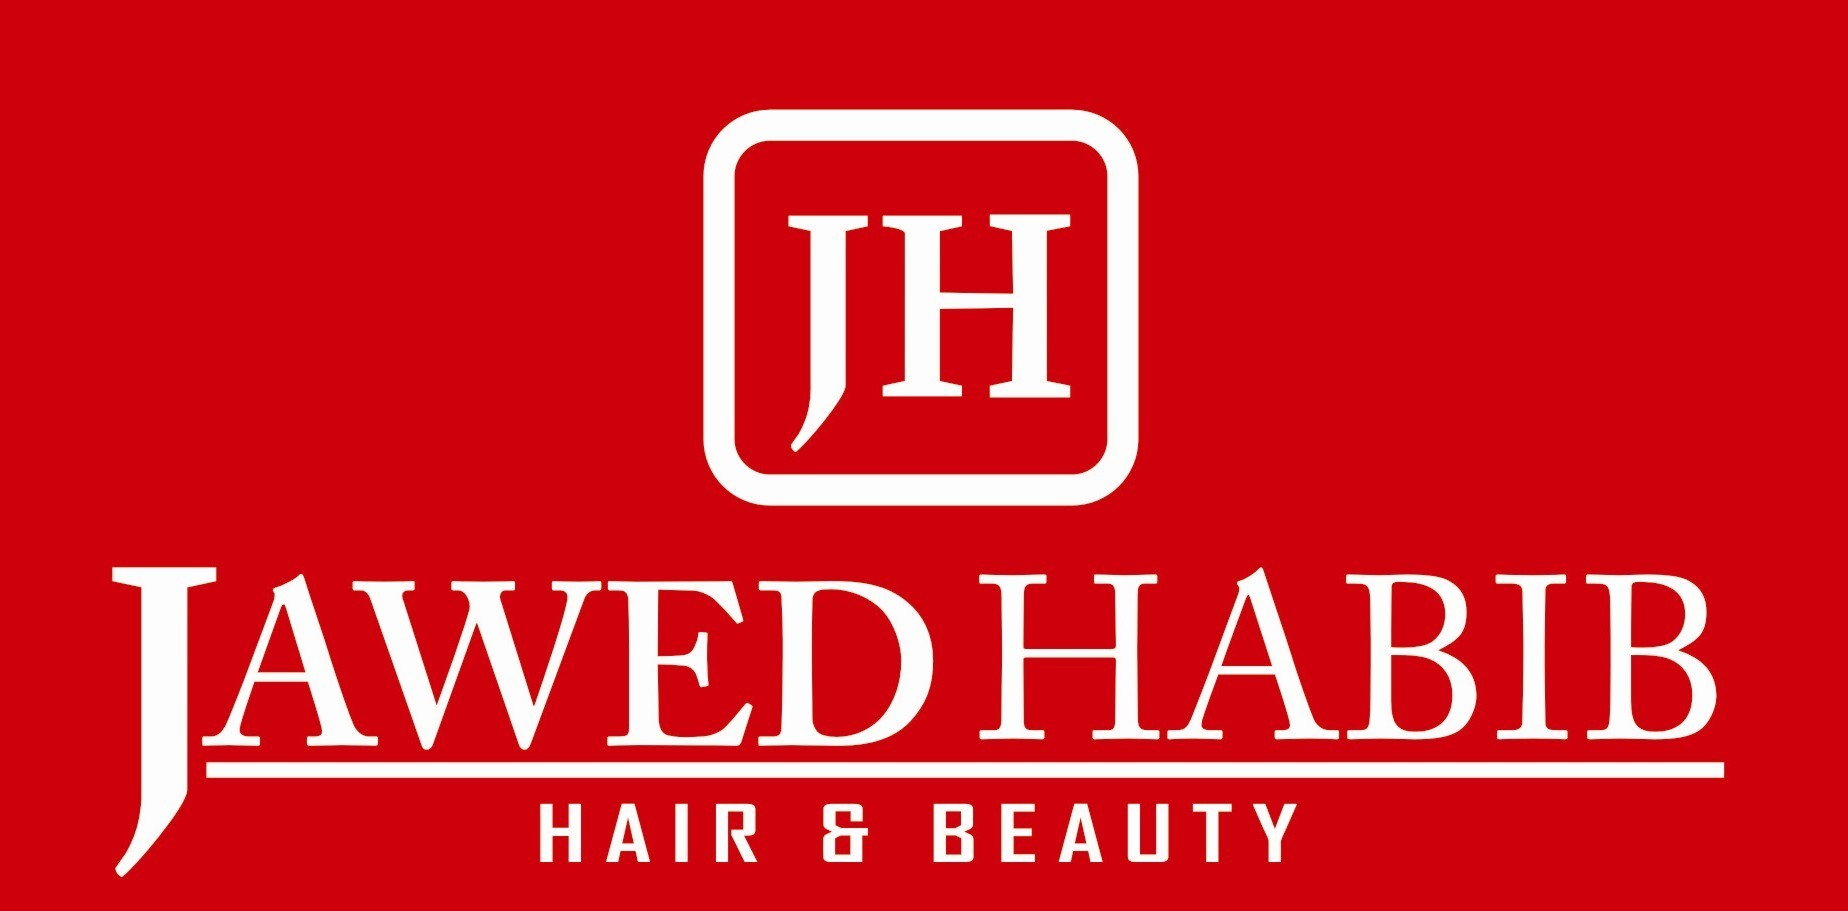 Jawed Habib Hair & Beauty Salons - Khazuri Gate - Batala Image